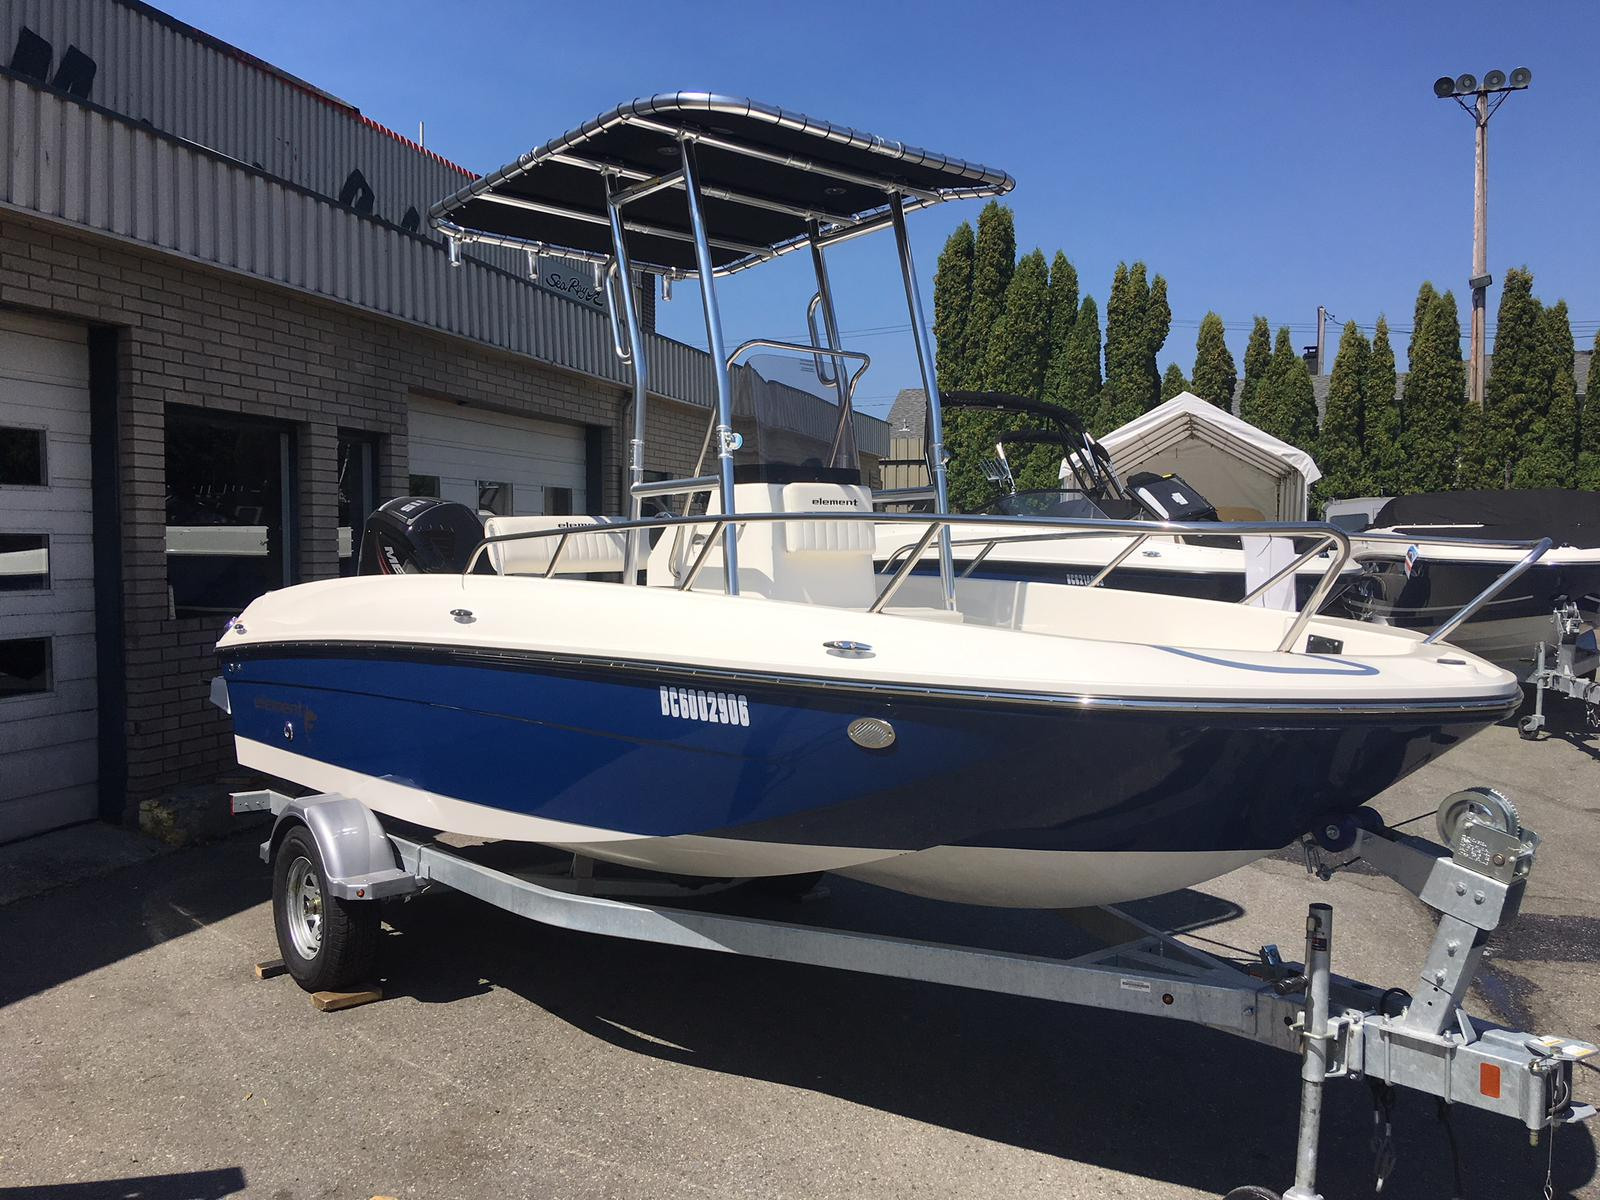 2018 Bayliner boat for sale, model of the boat is Element F18 & Image # 1 of 6